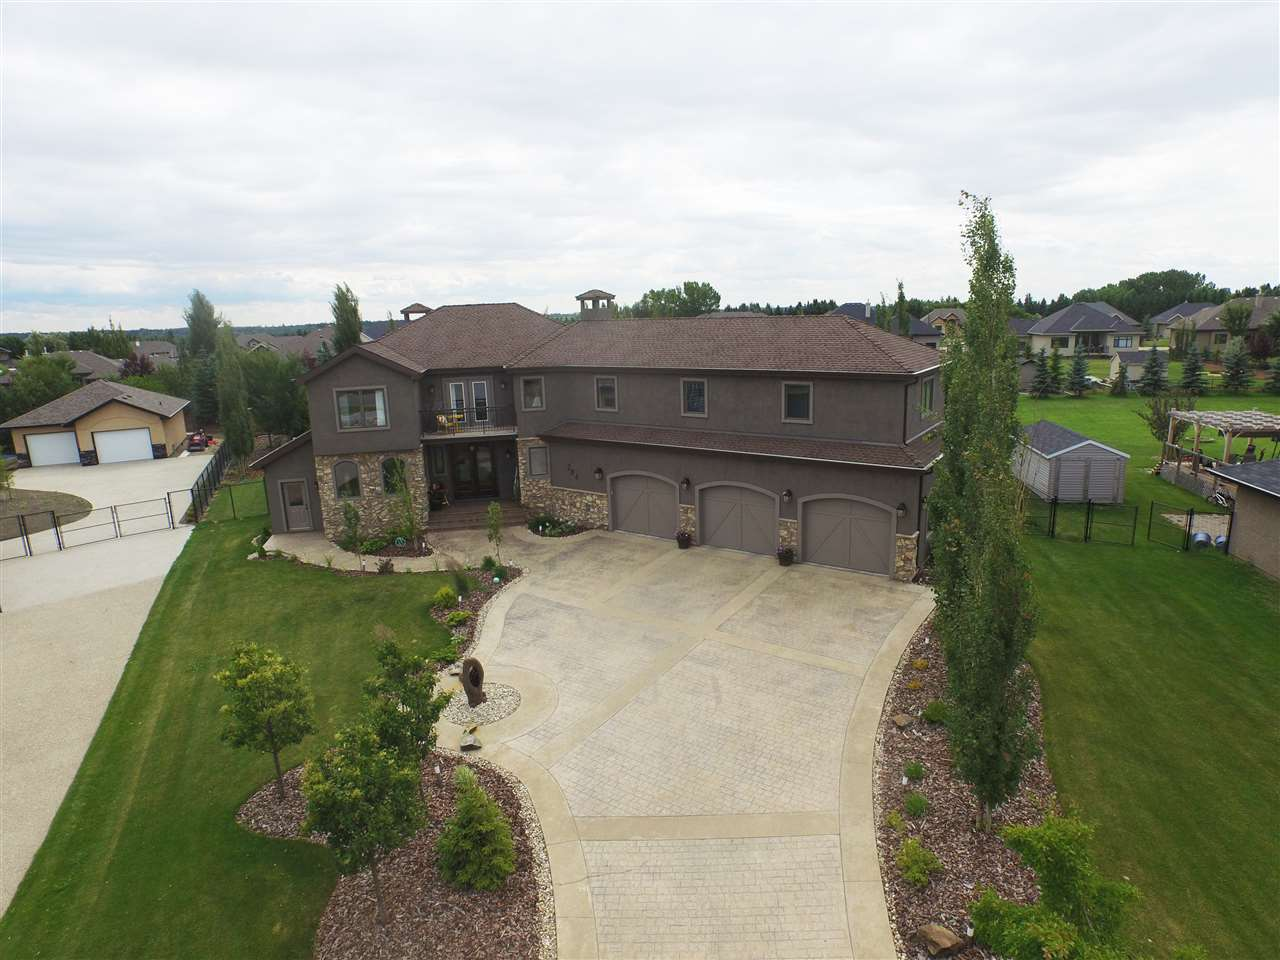 Stunning 2 storey Estate home in The Banks of Sturgeon Valley. W/ over 6000 sqft of living space, this 5 bed, 5 bath home is perfect for any growing family. Remodelled throughout w/ clean crisp finishings, yet elegant & functional design. Stucco & stone exterior w/ gorgeous landscaping will catch any onlookers eye. Main floor is one of beauty w/ heated travertine flooring, chefs dream kitchen w/ gourmet appliances, butlers pantry, fresh white cabinets, quartz countertops & large island. Massive dining area overlooking the private, fully fenced & landscaped yard. Stunning living room w/ plenty of natural sunlight & stylish 2 sided fireplace & main floor den complete this well designed home. Upper level includes 4 bedrooms, laundry room & bonus area. The master retreat is sure to impress w/ stunning 5 pc. ensuite w/ soaker tub. Lower level includes the 5th bedroom, full bath, media room w/ wet bar & separate wine room. Quality of finishings in this home are above the rest. A must see to appreciate!!!